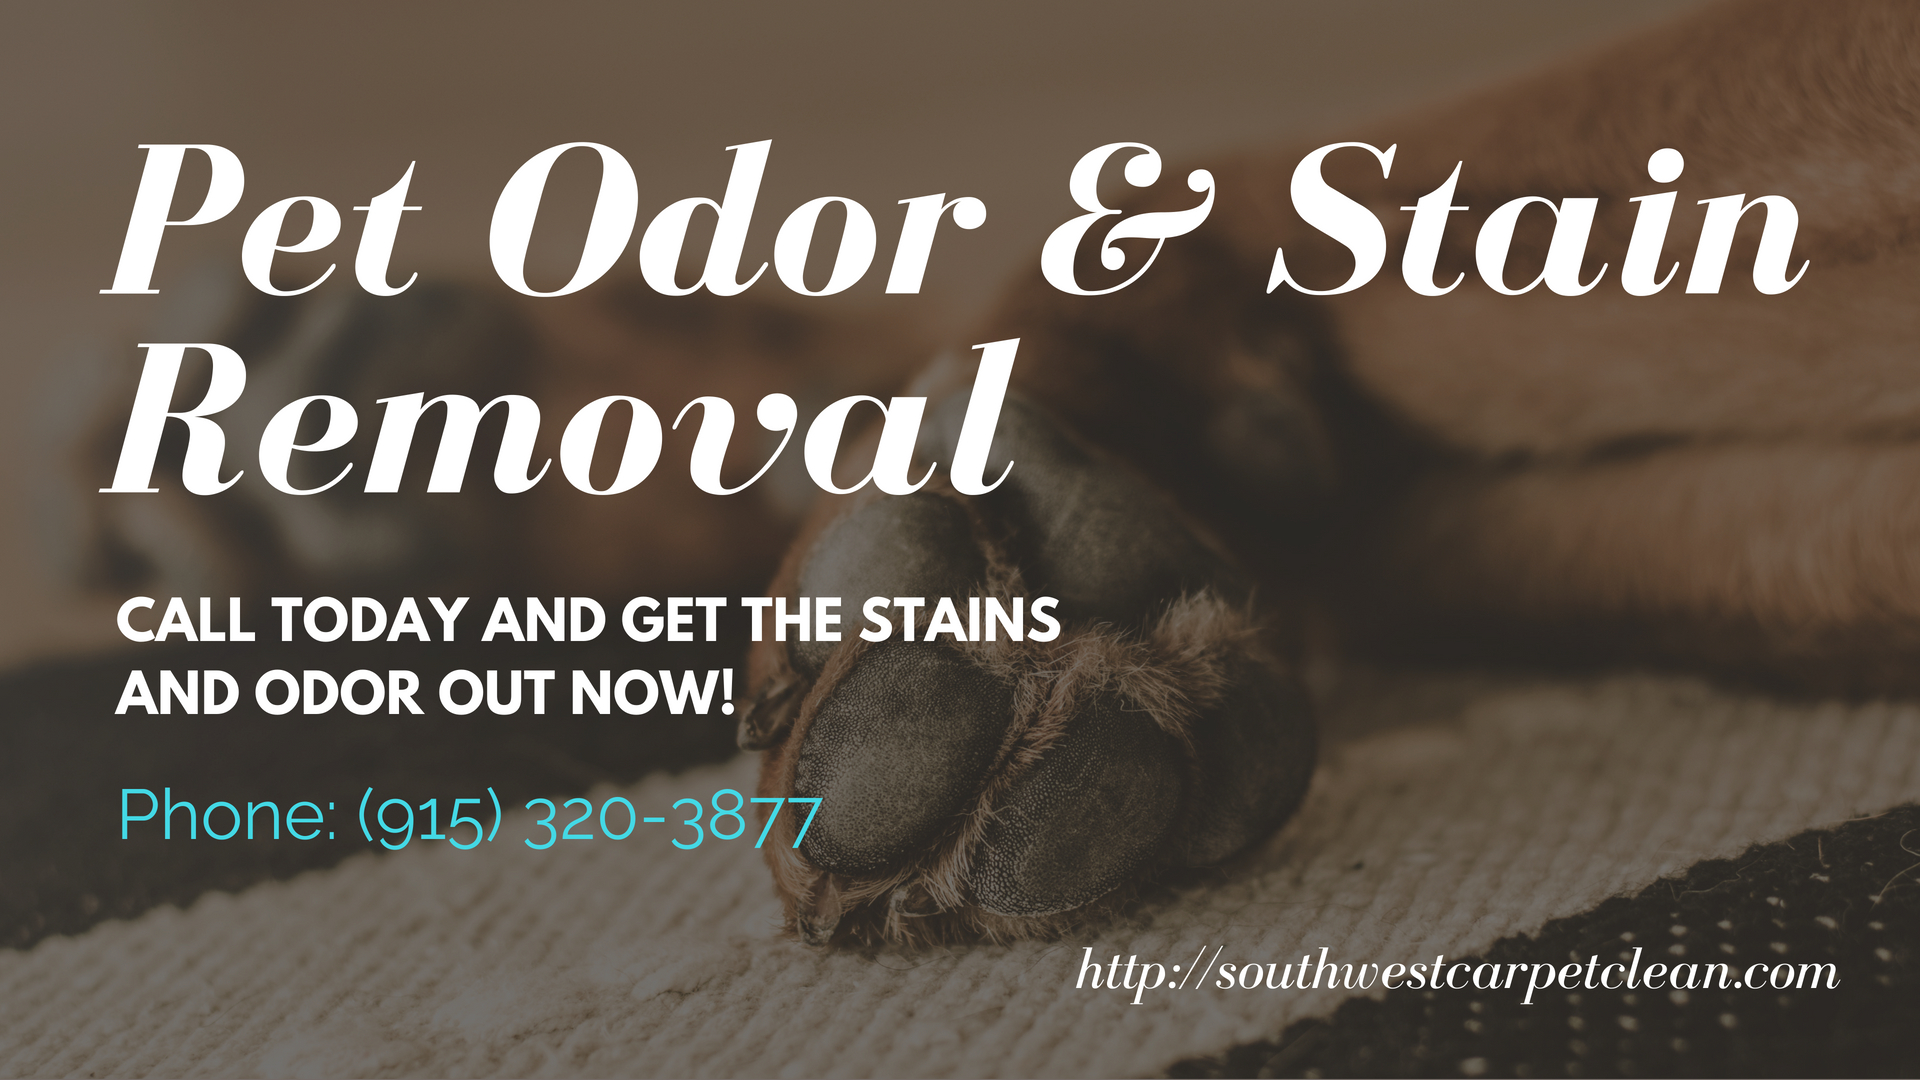 Pet Odor and Stain Removal in El Paso